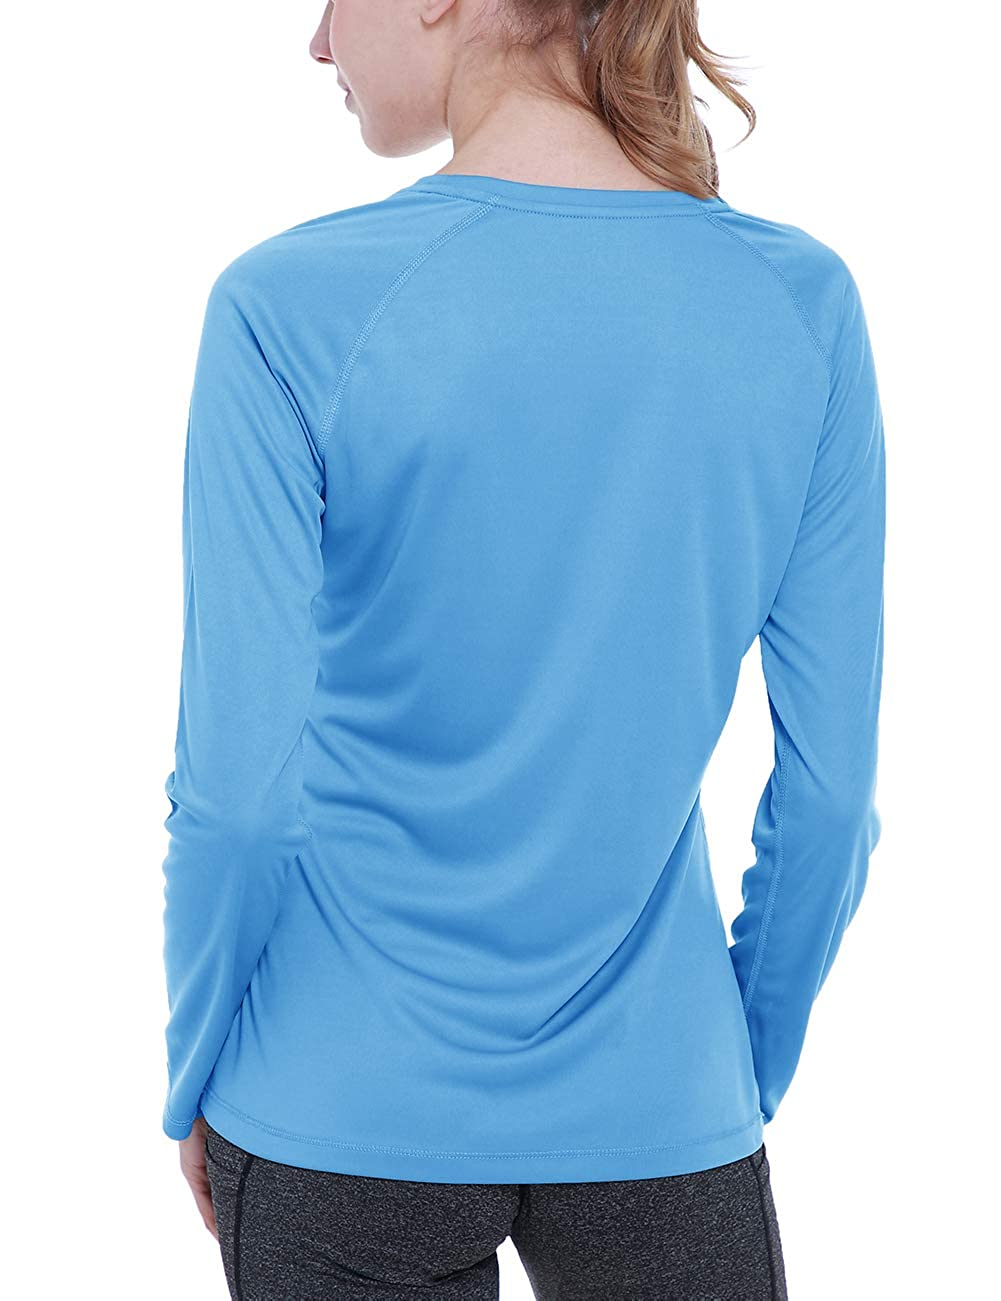 ChinFun Womens UPF 50 UV Sun Protection T-Shirt Long Sleeve Outdoor Running Performance Athletic Workout Top Tee